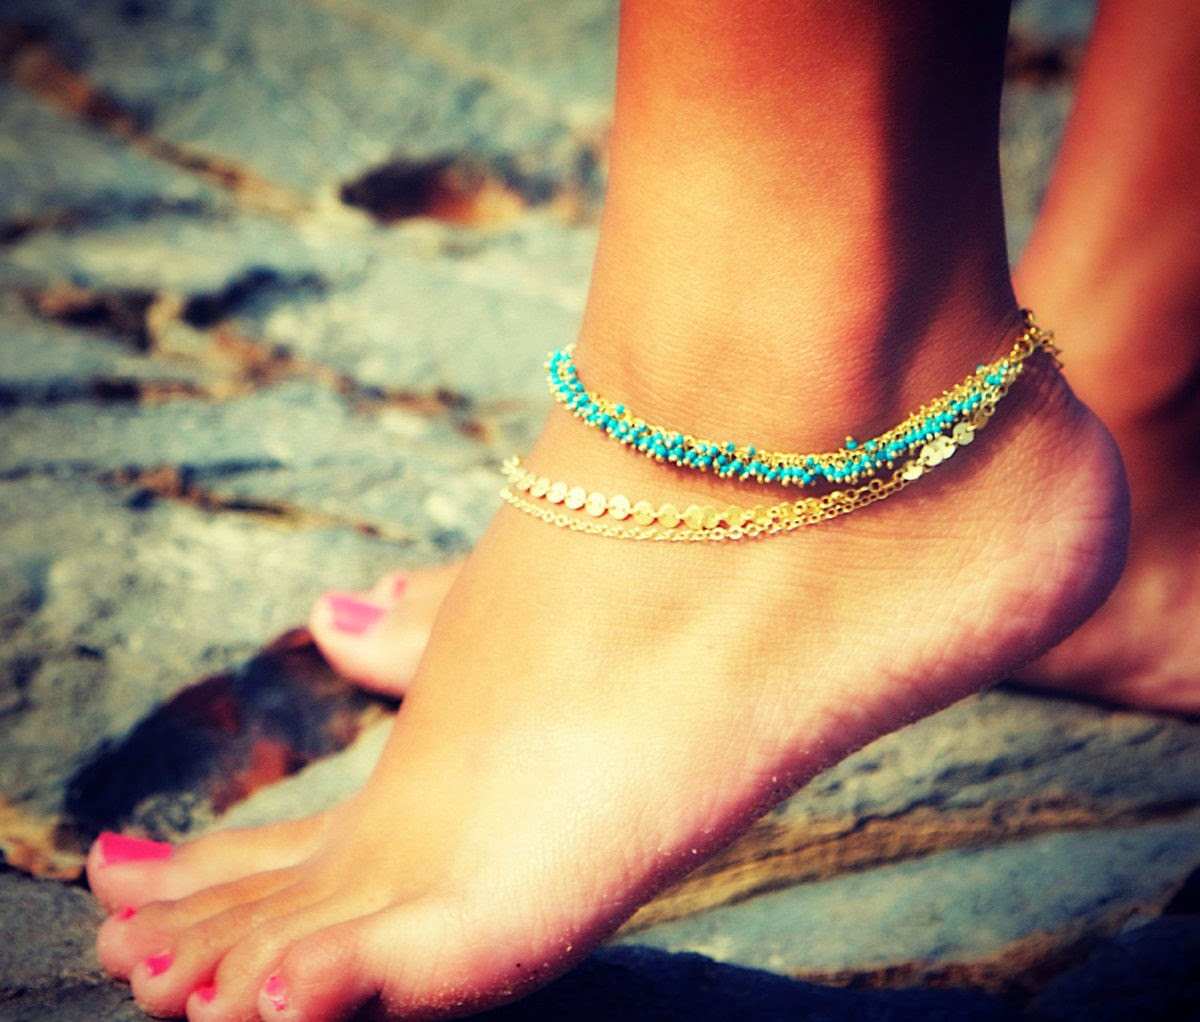 Anklet - The Jingling Jewel | India - The Land Of Hearts